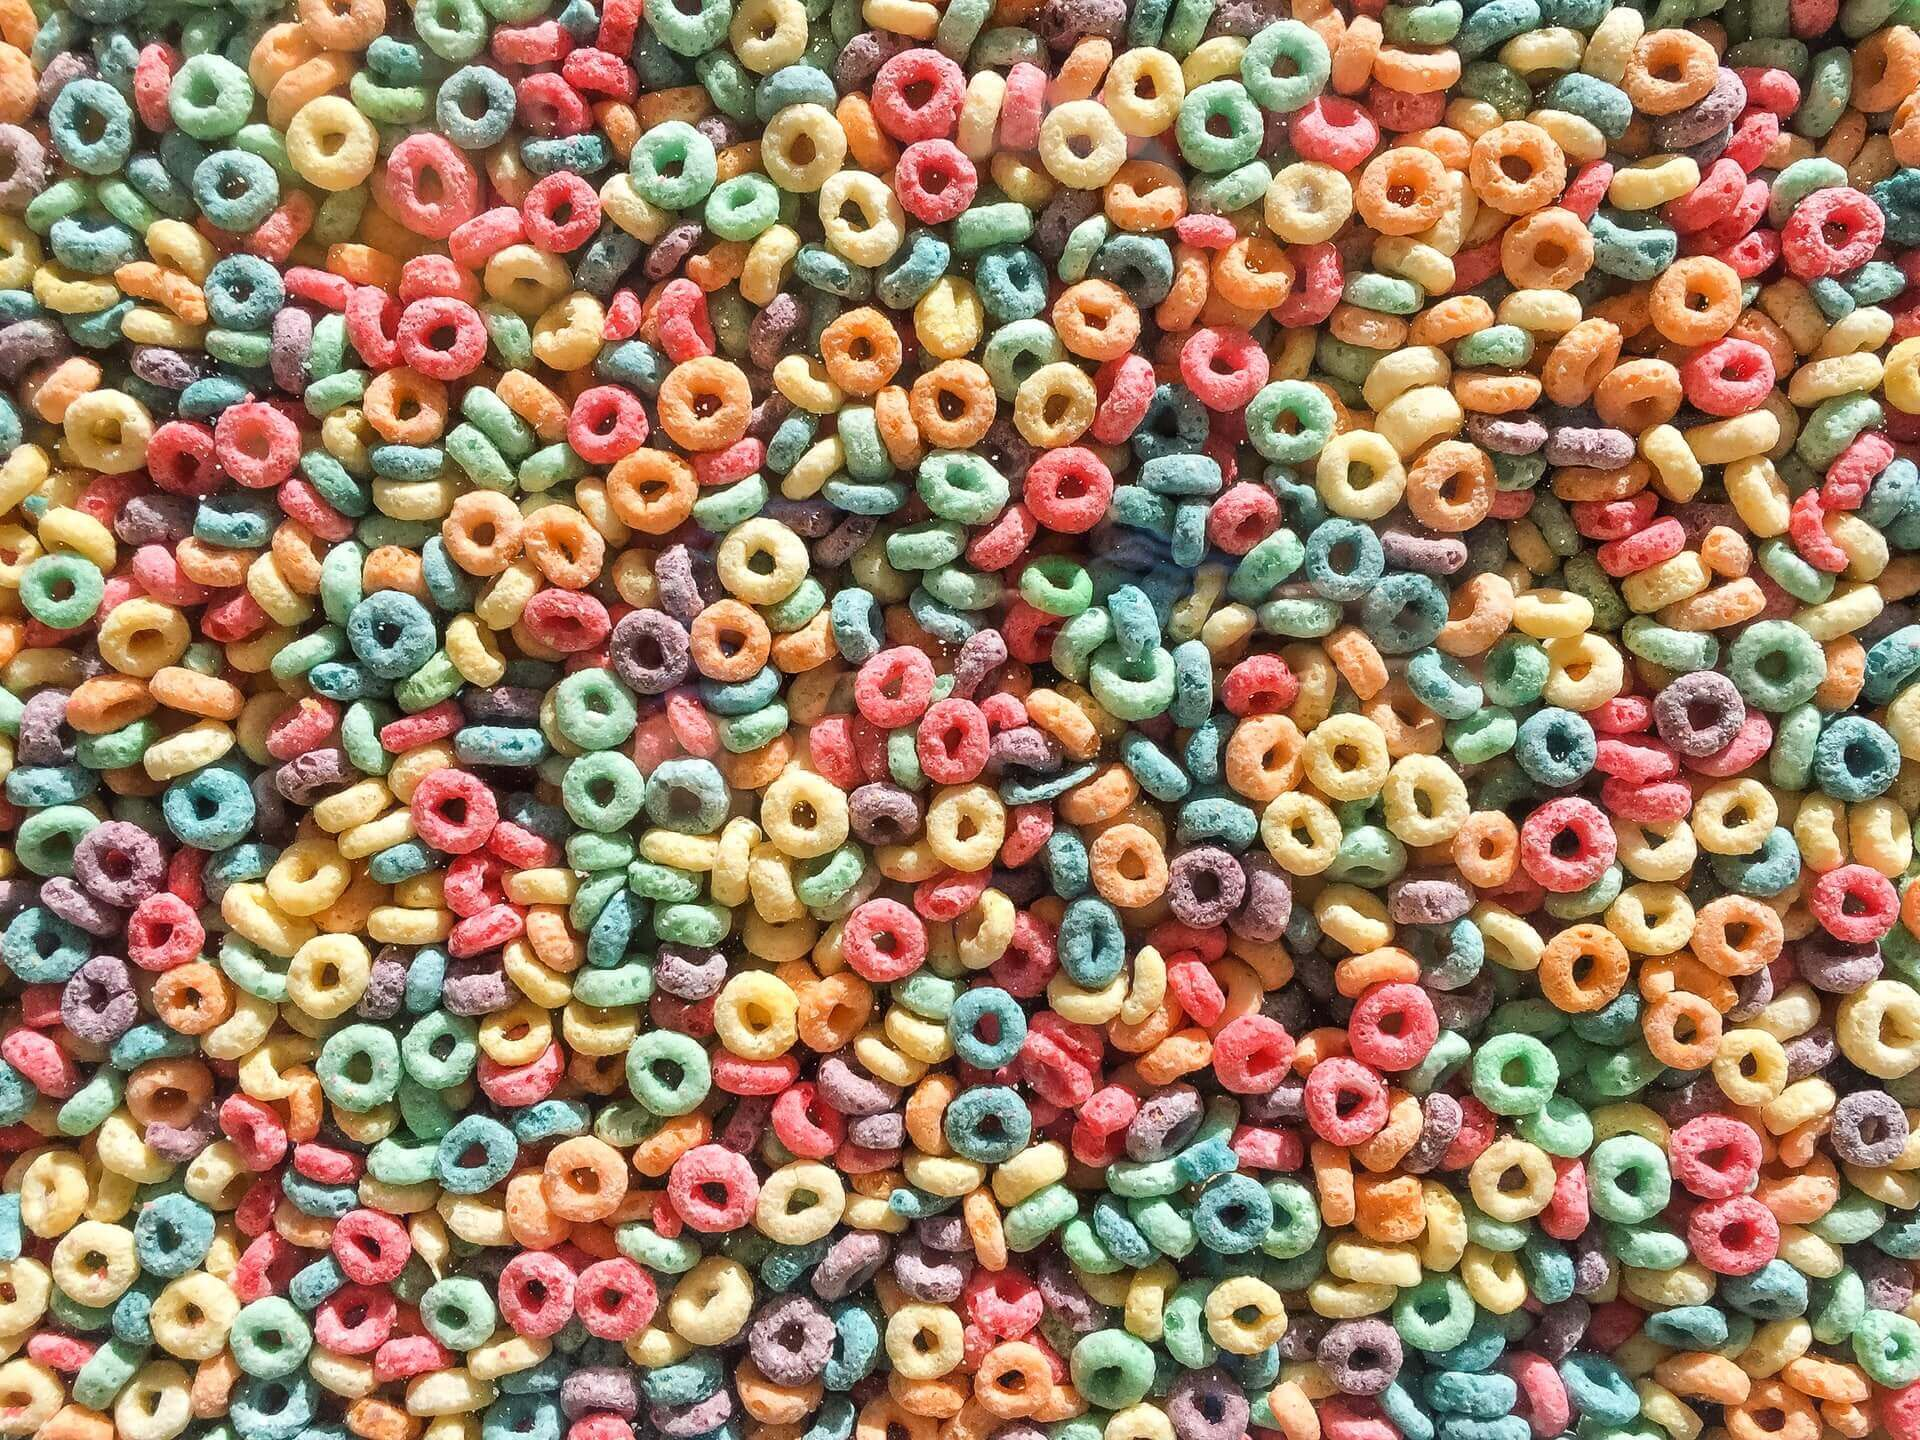 A lot of sugary ring-shaped cereals in a variety of bright colors.